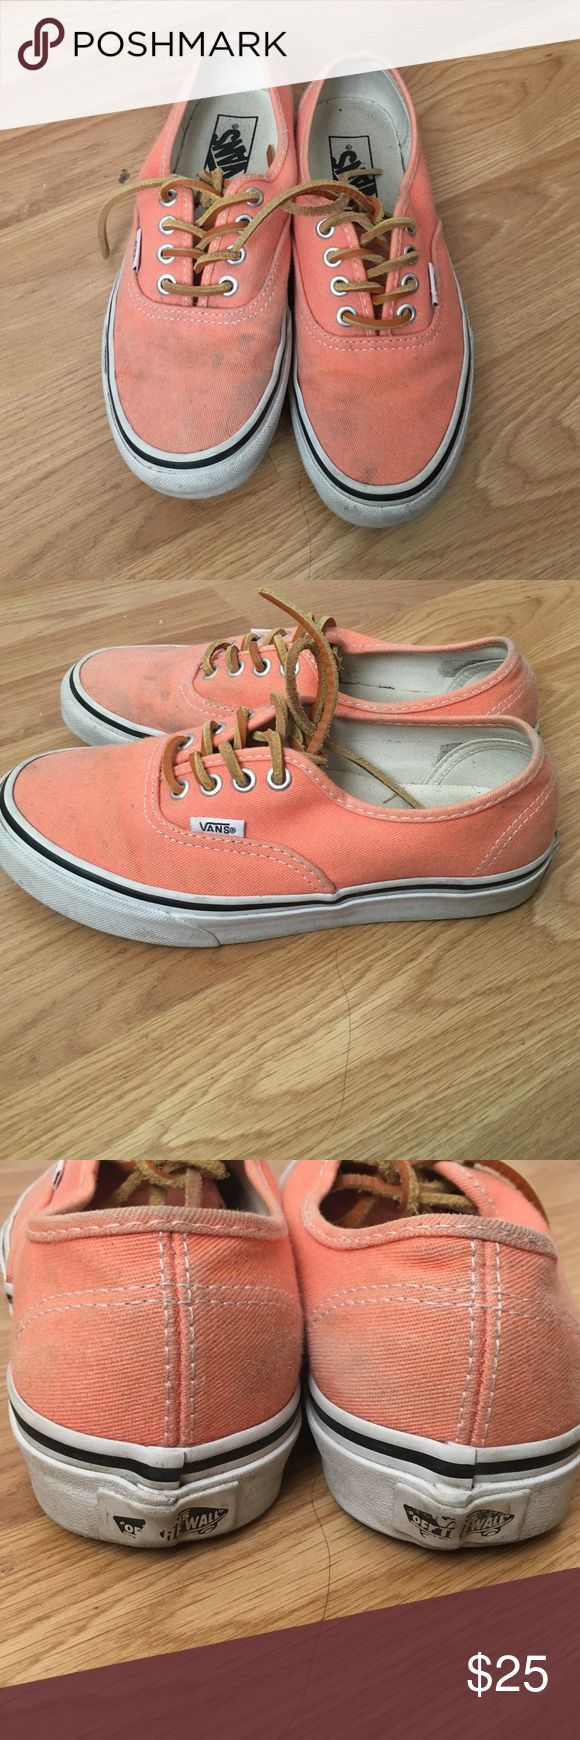 VANS coral authentic canvas Coral colored Vans, just needs a little cleaning but in good condition still Vans Shoes Athletic Shoes